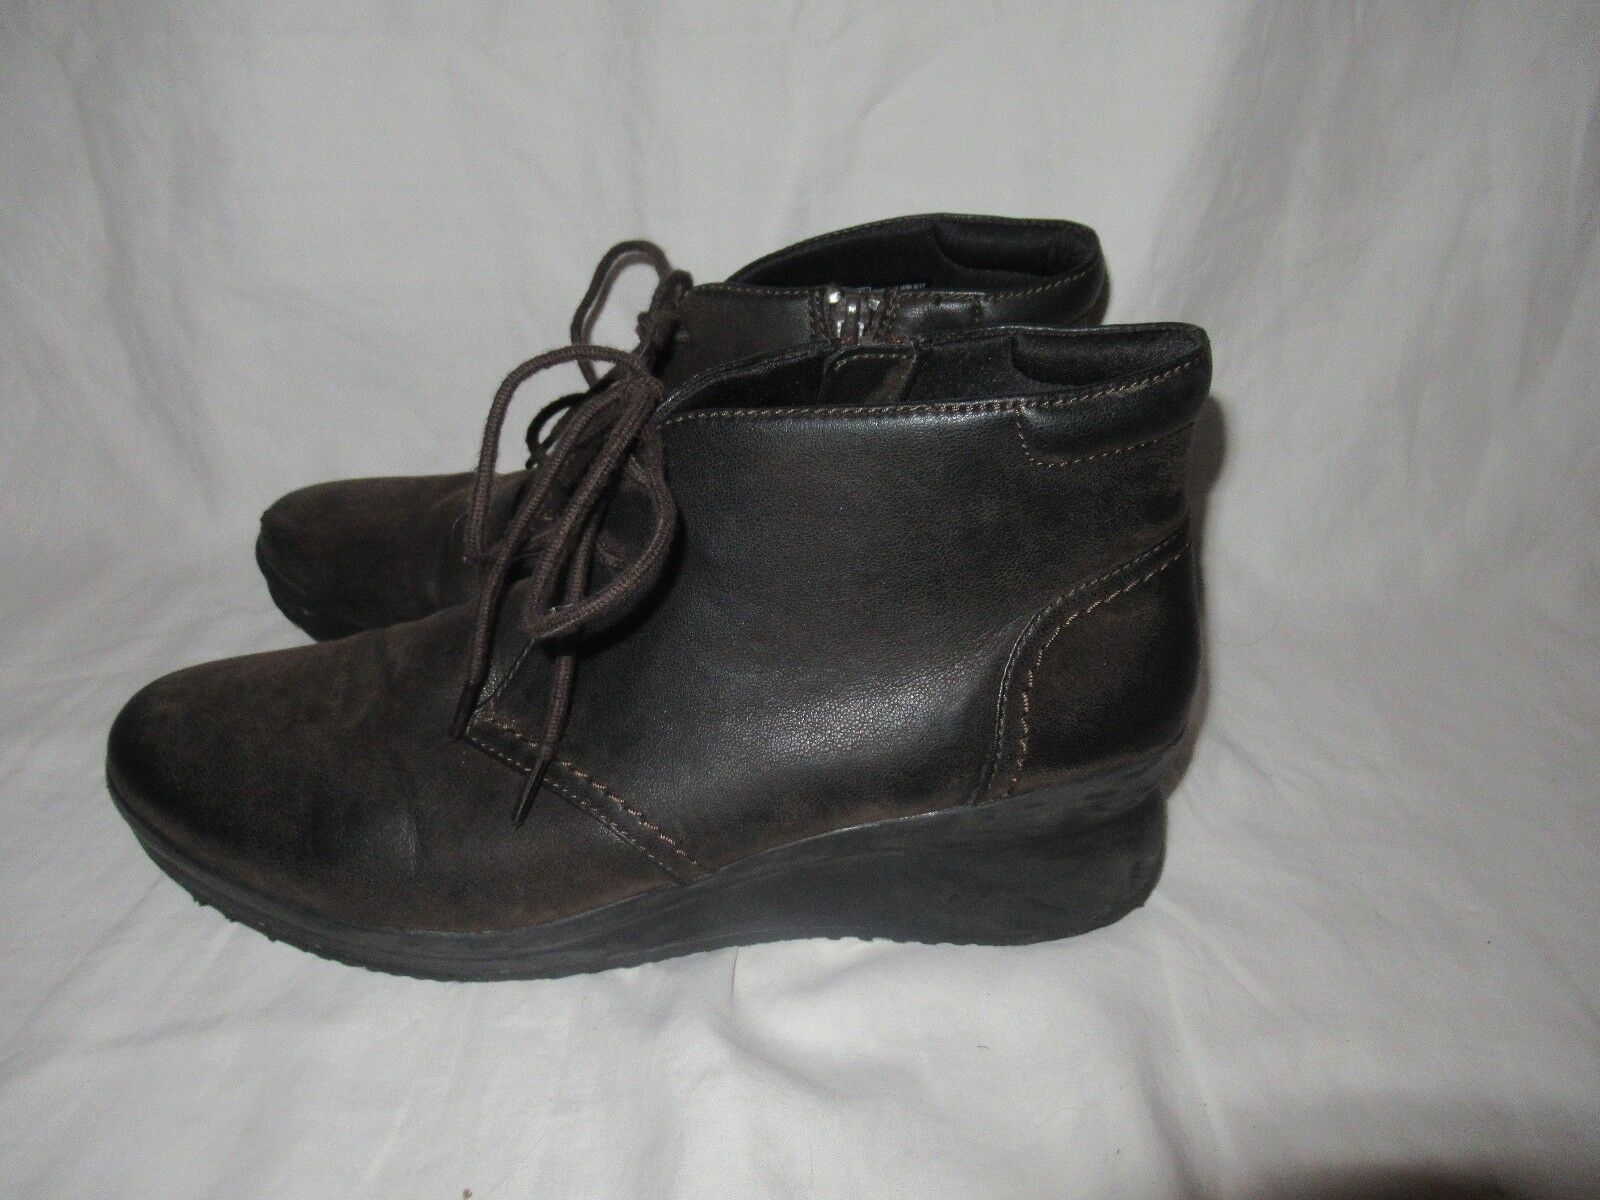 CLARKS CLOUD STEPPERS Brown Leather ANKLE BOOTS WOMENS SZ 10 M Vibram Soles